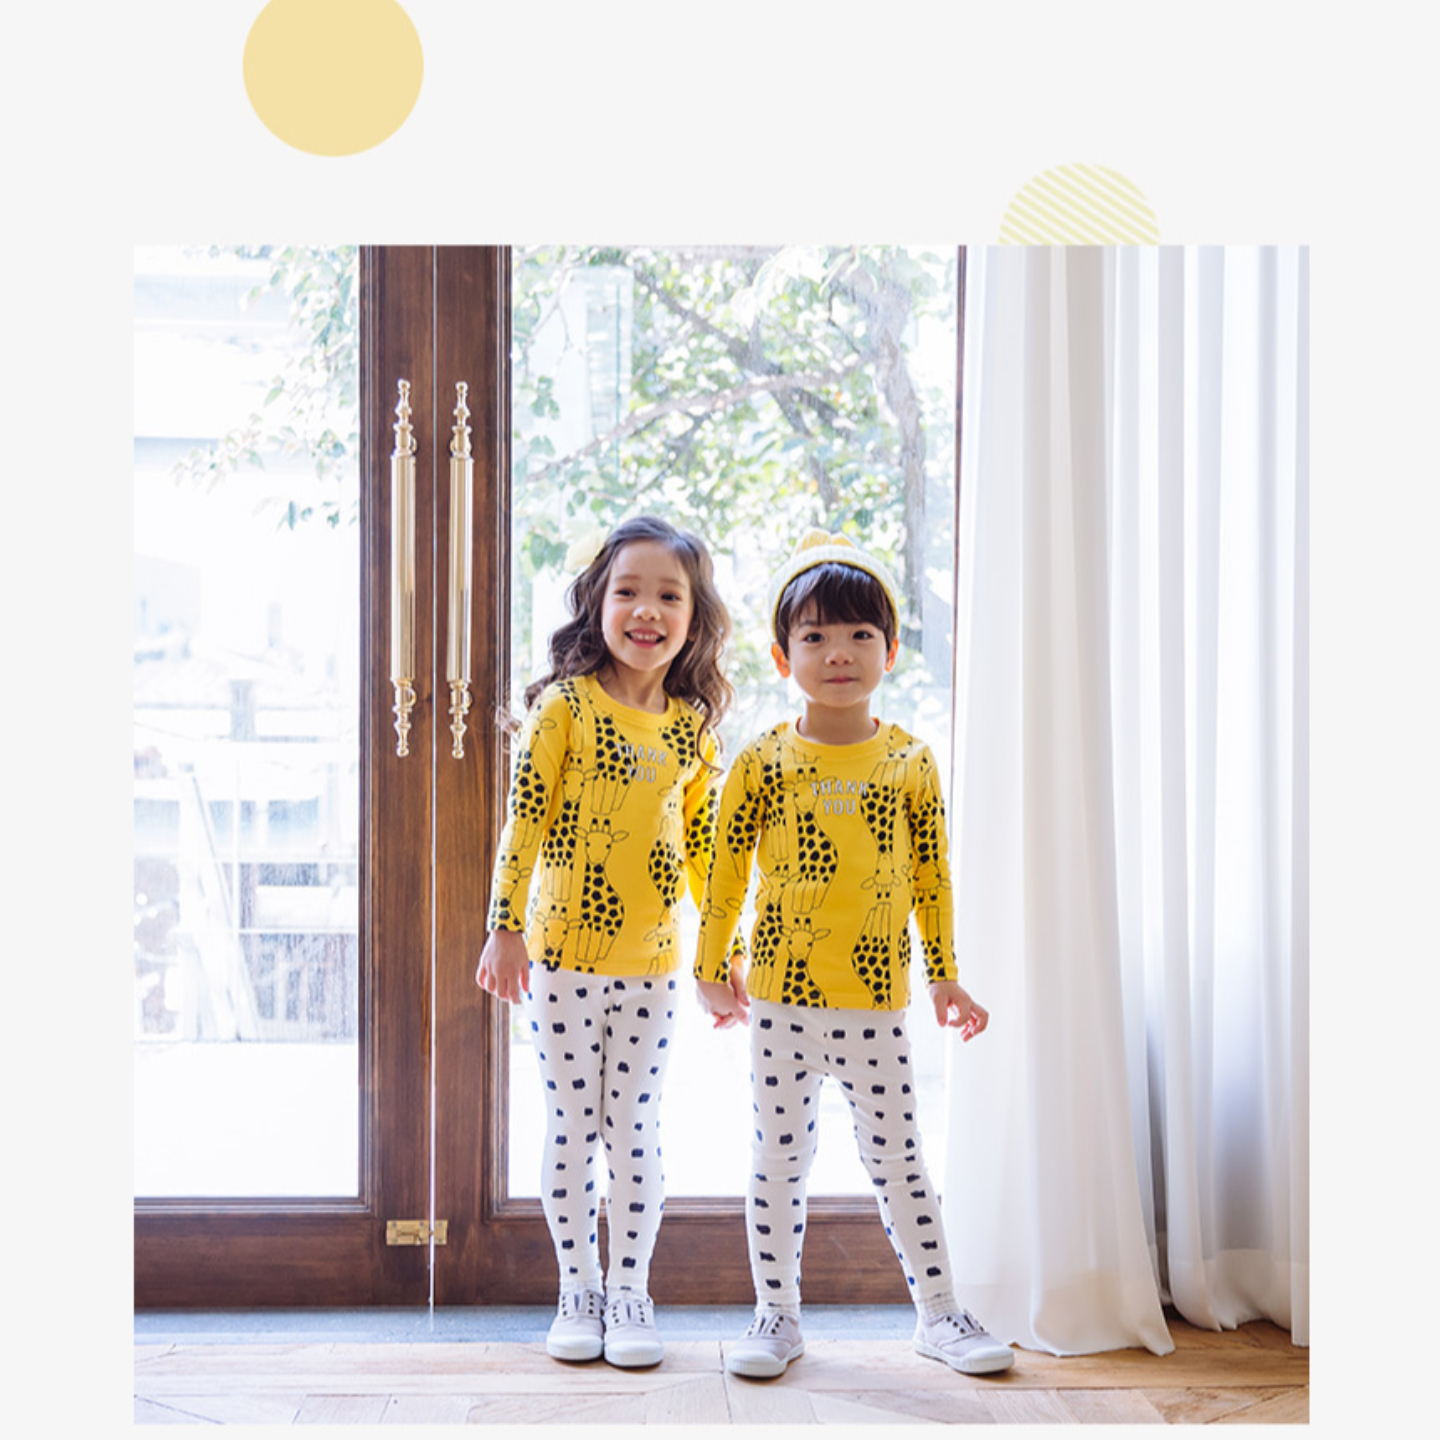 The Happy Giraffe Easywear/ PJs